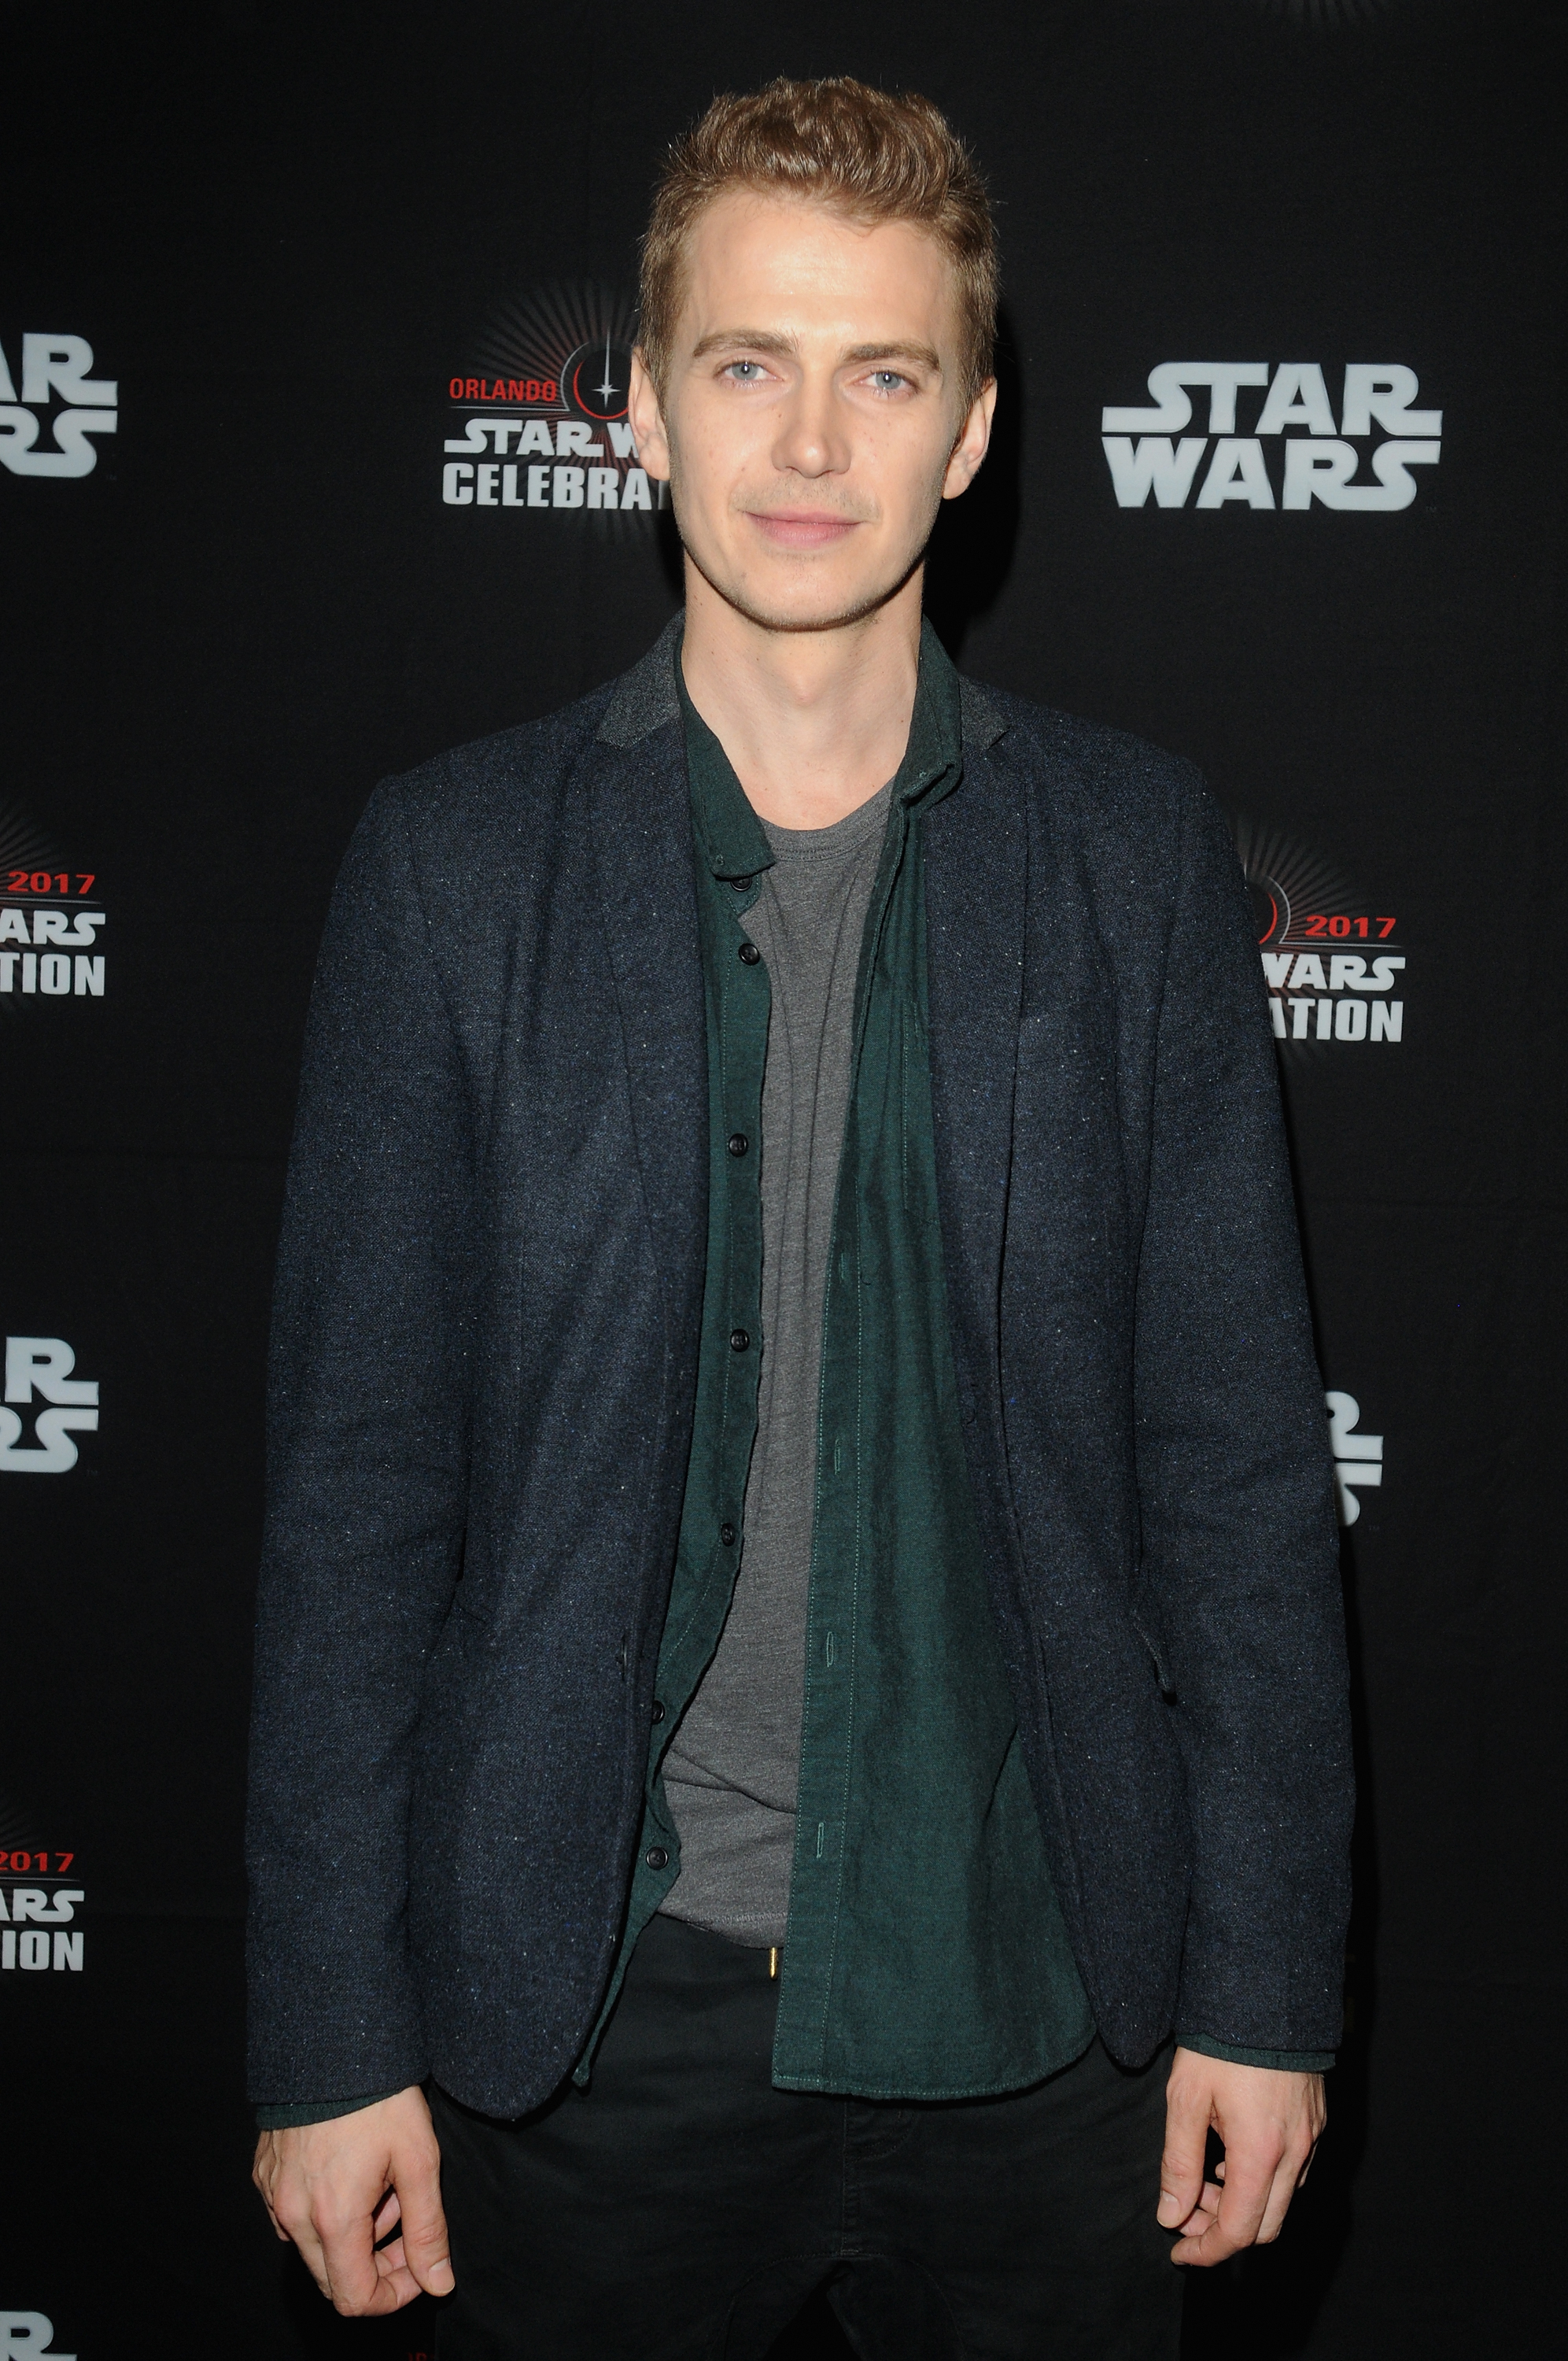 Hayden Christensen attends the 40 Years of Star Wars panel during the 2017 Star Wars Celebration at Orange County Convention Center in Orlando, Florida on April 13, 2017.